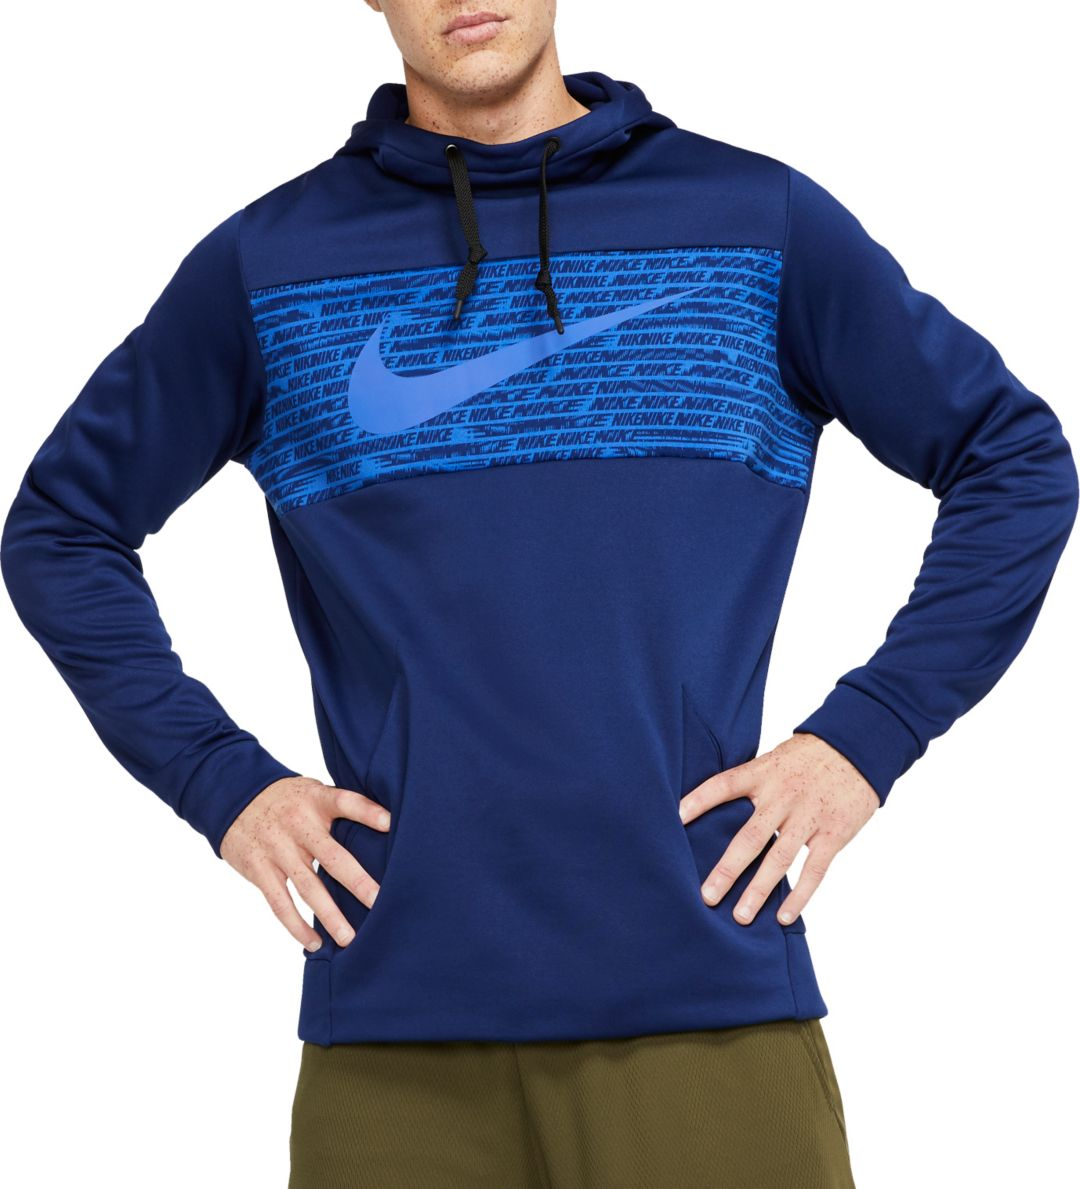 Royal Blue Nike Hoody Nike pullover hoody with front pocket